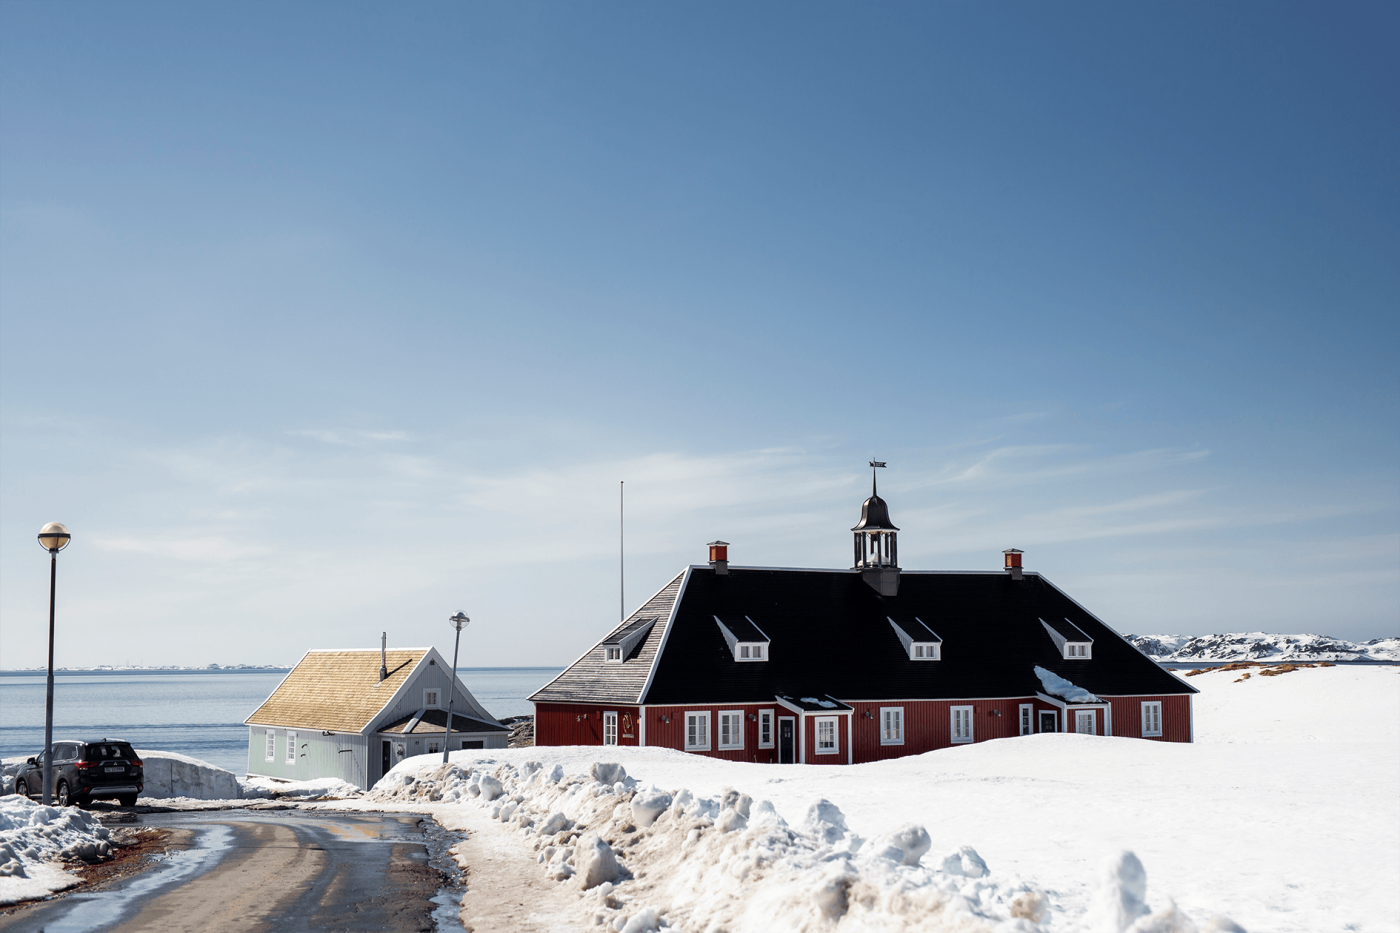 Old University of Greenland. Photo by Aningaaq R. Carlsen - Visit Greenland